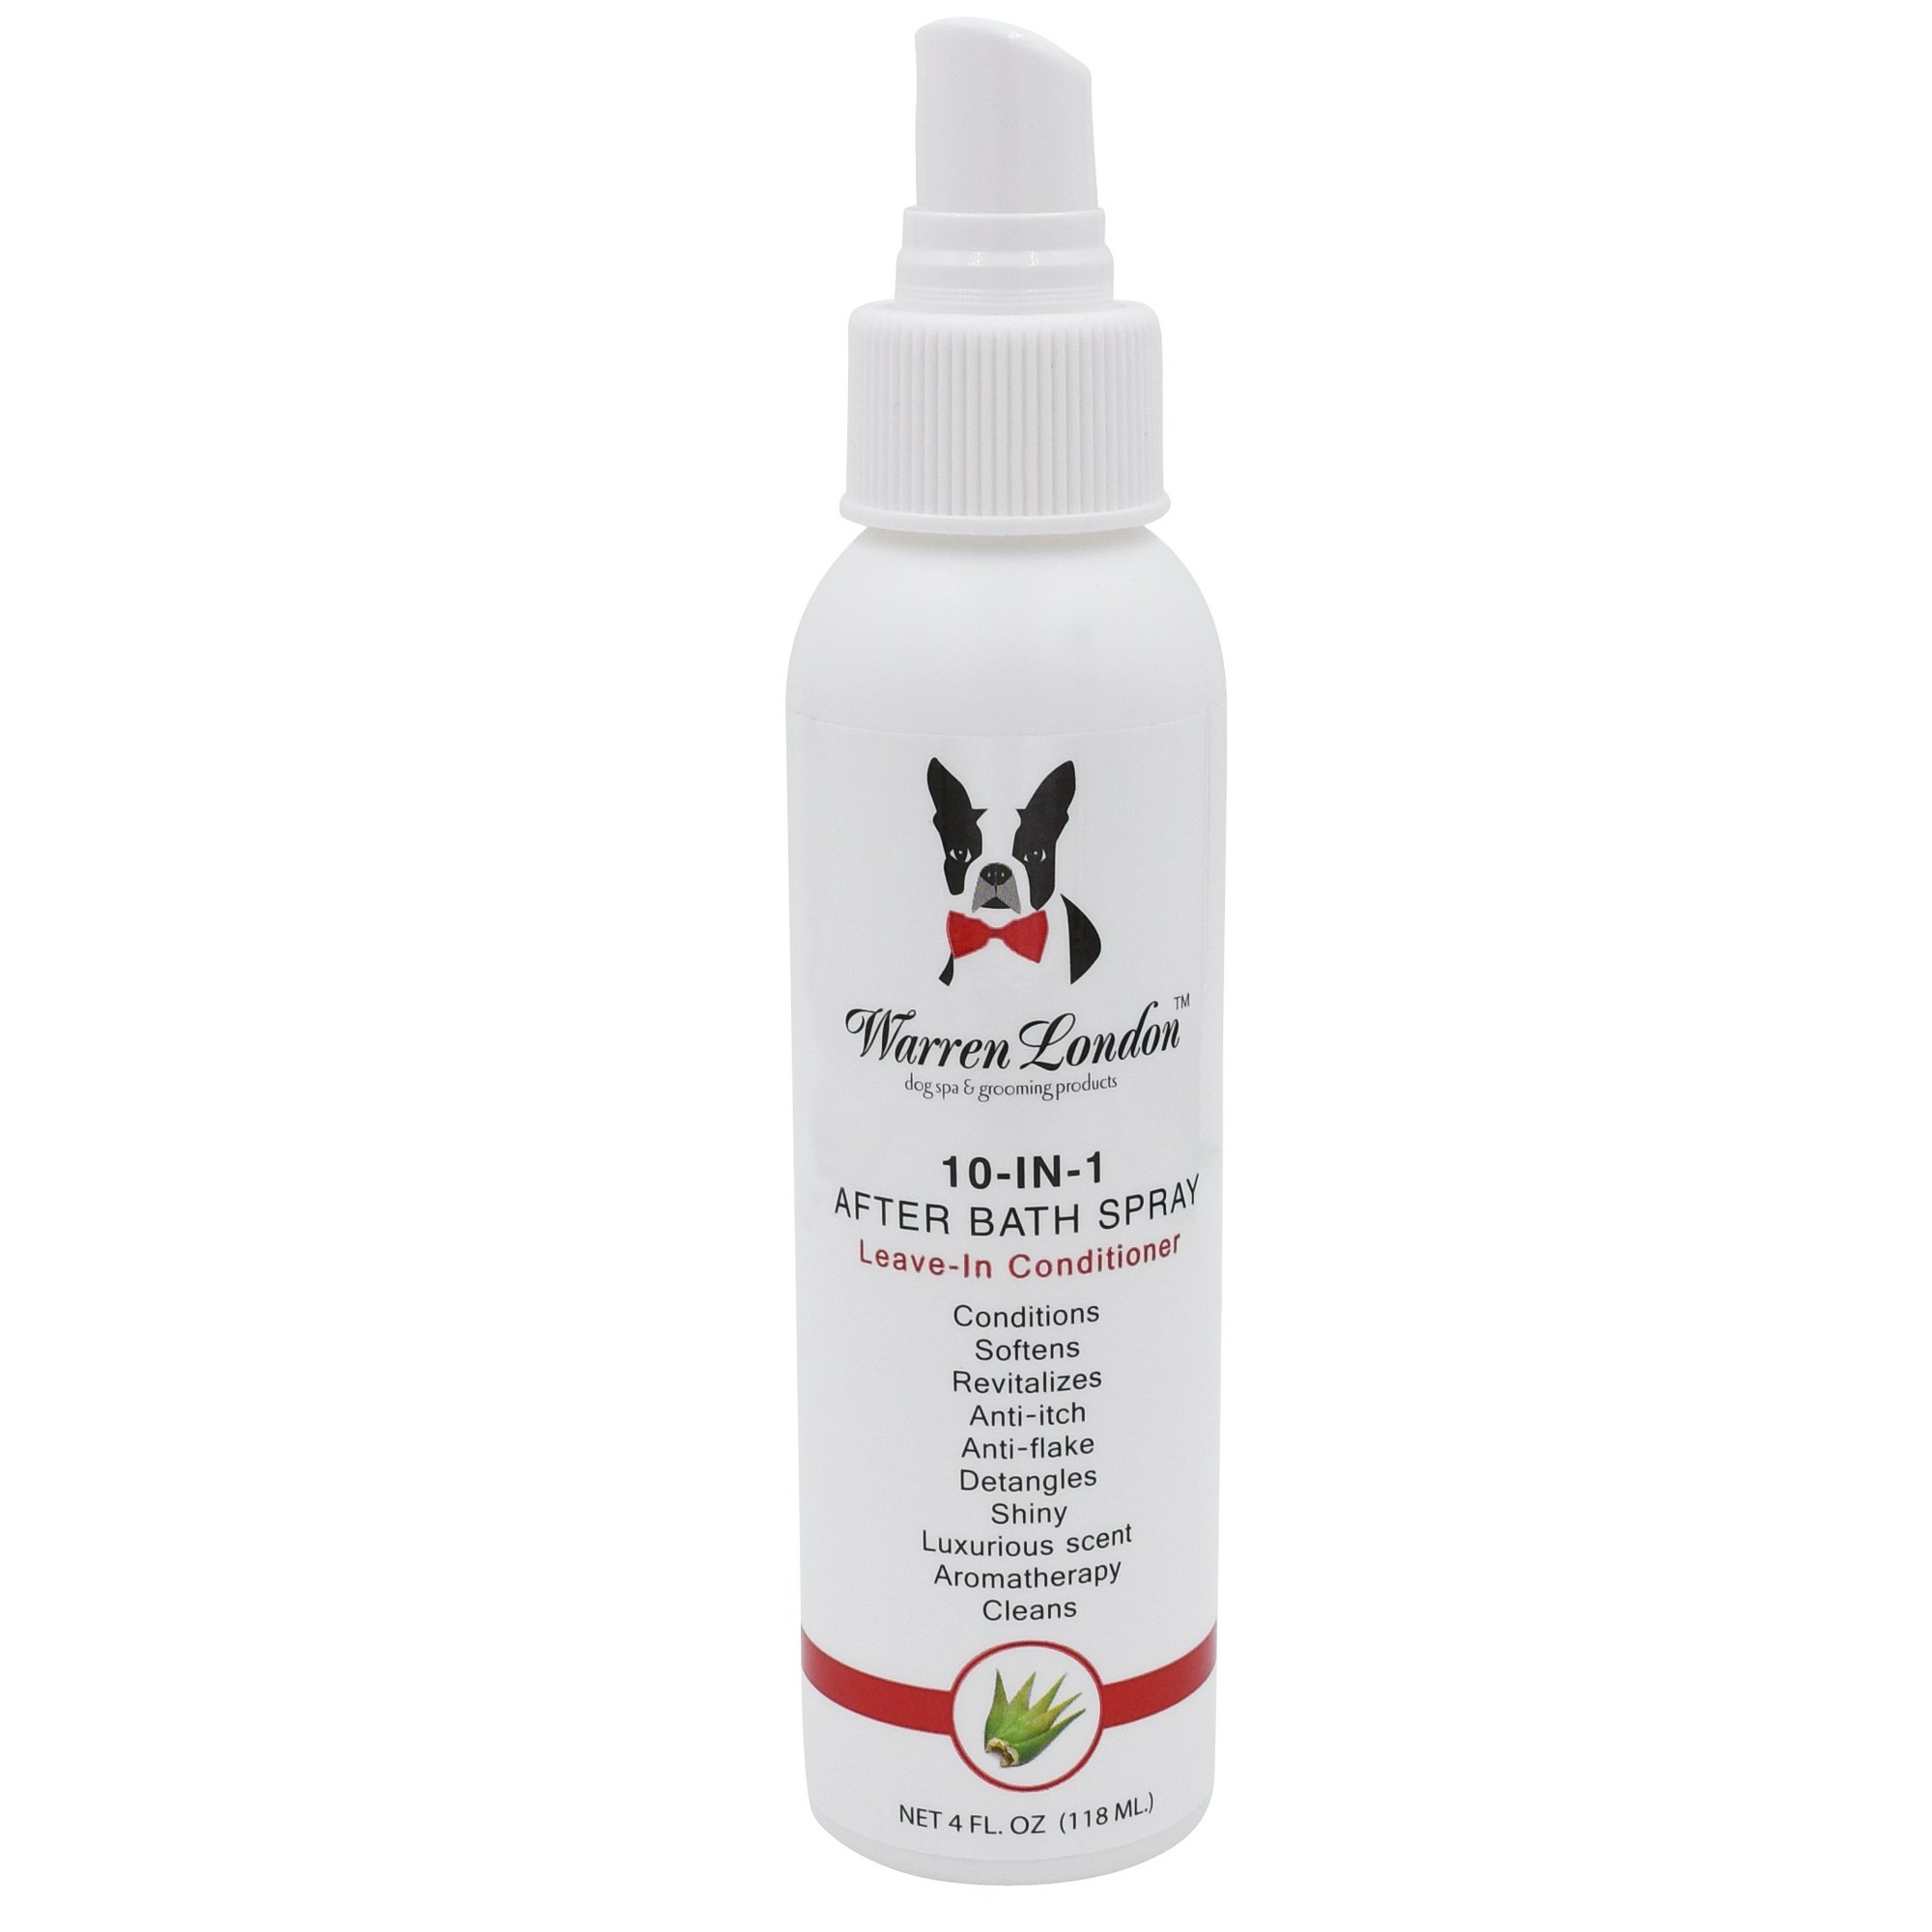 Warren London 10 in 1 After Bath Spray for Dogs